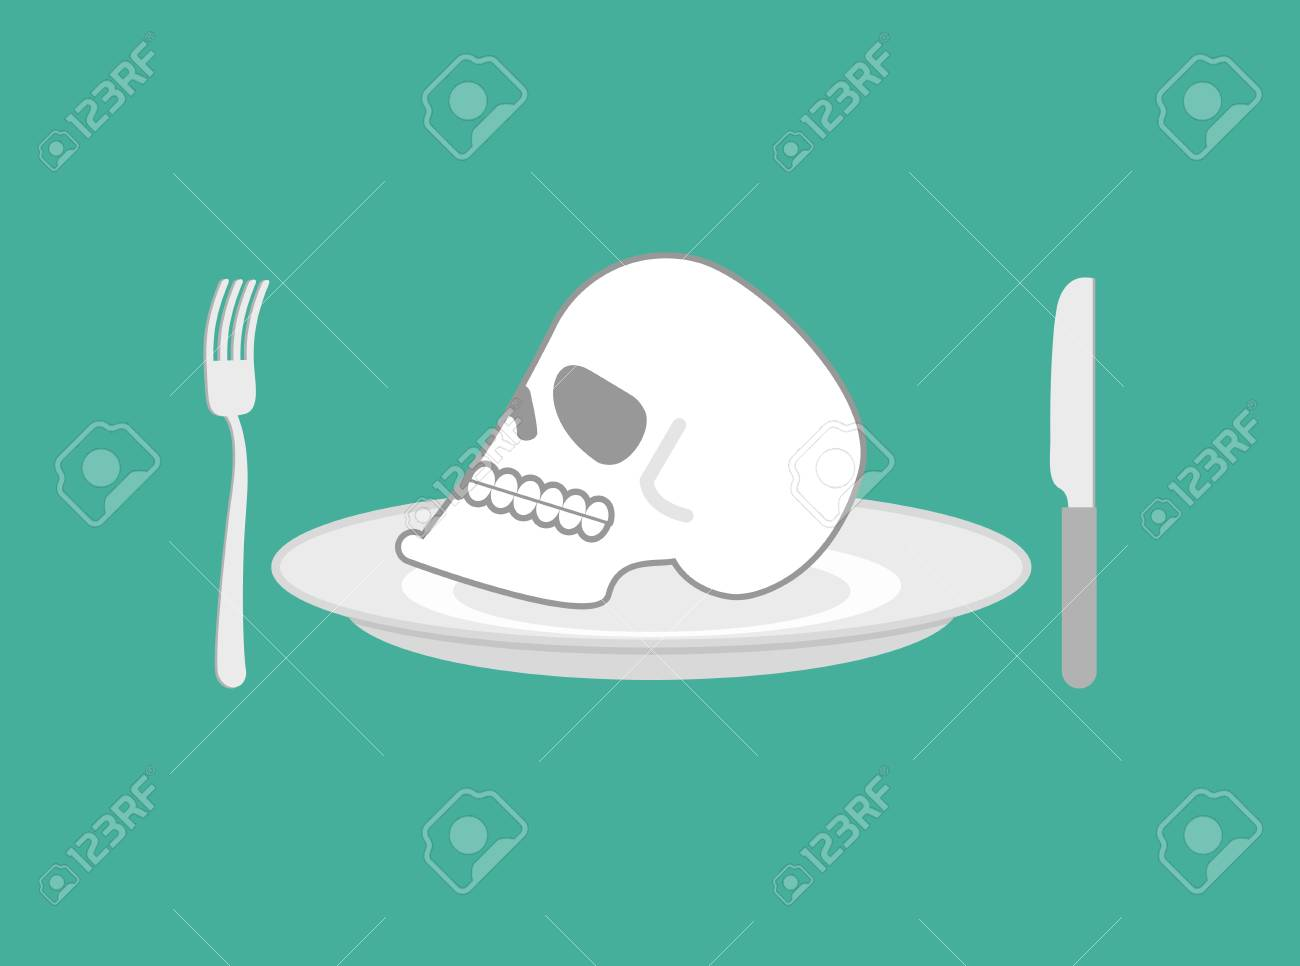 Skull On Plate. Head Of Skeleton On Dish. Knife And Fork Royalty ...